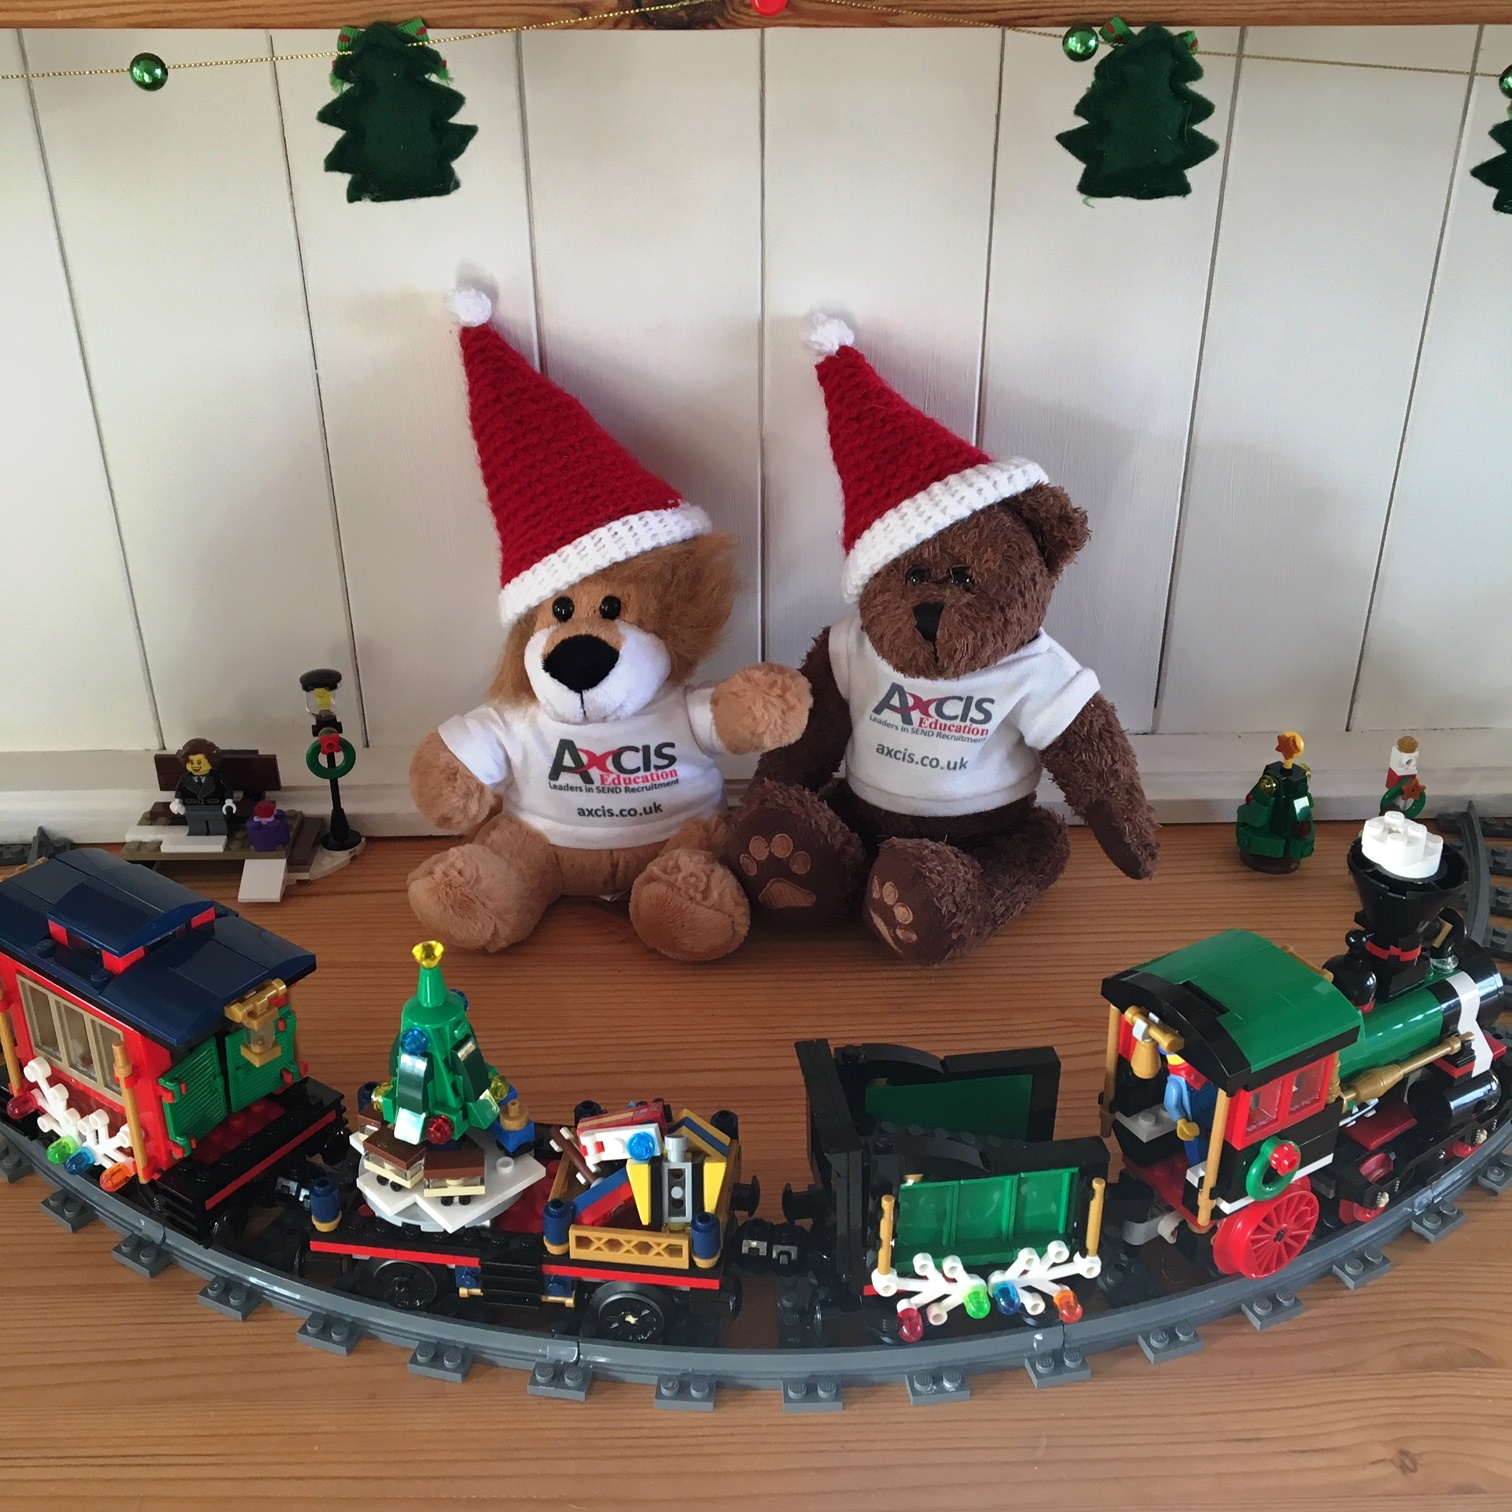 Lionel Christmas Train.Andy And Lionel Xmas Train Square